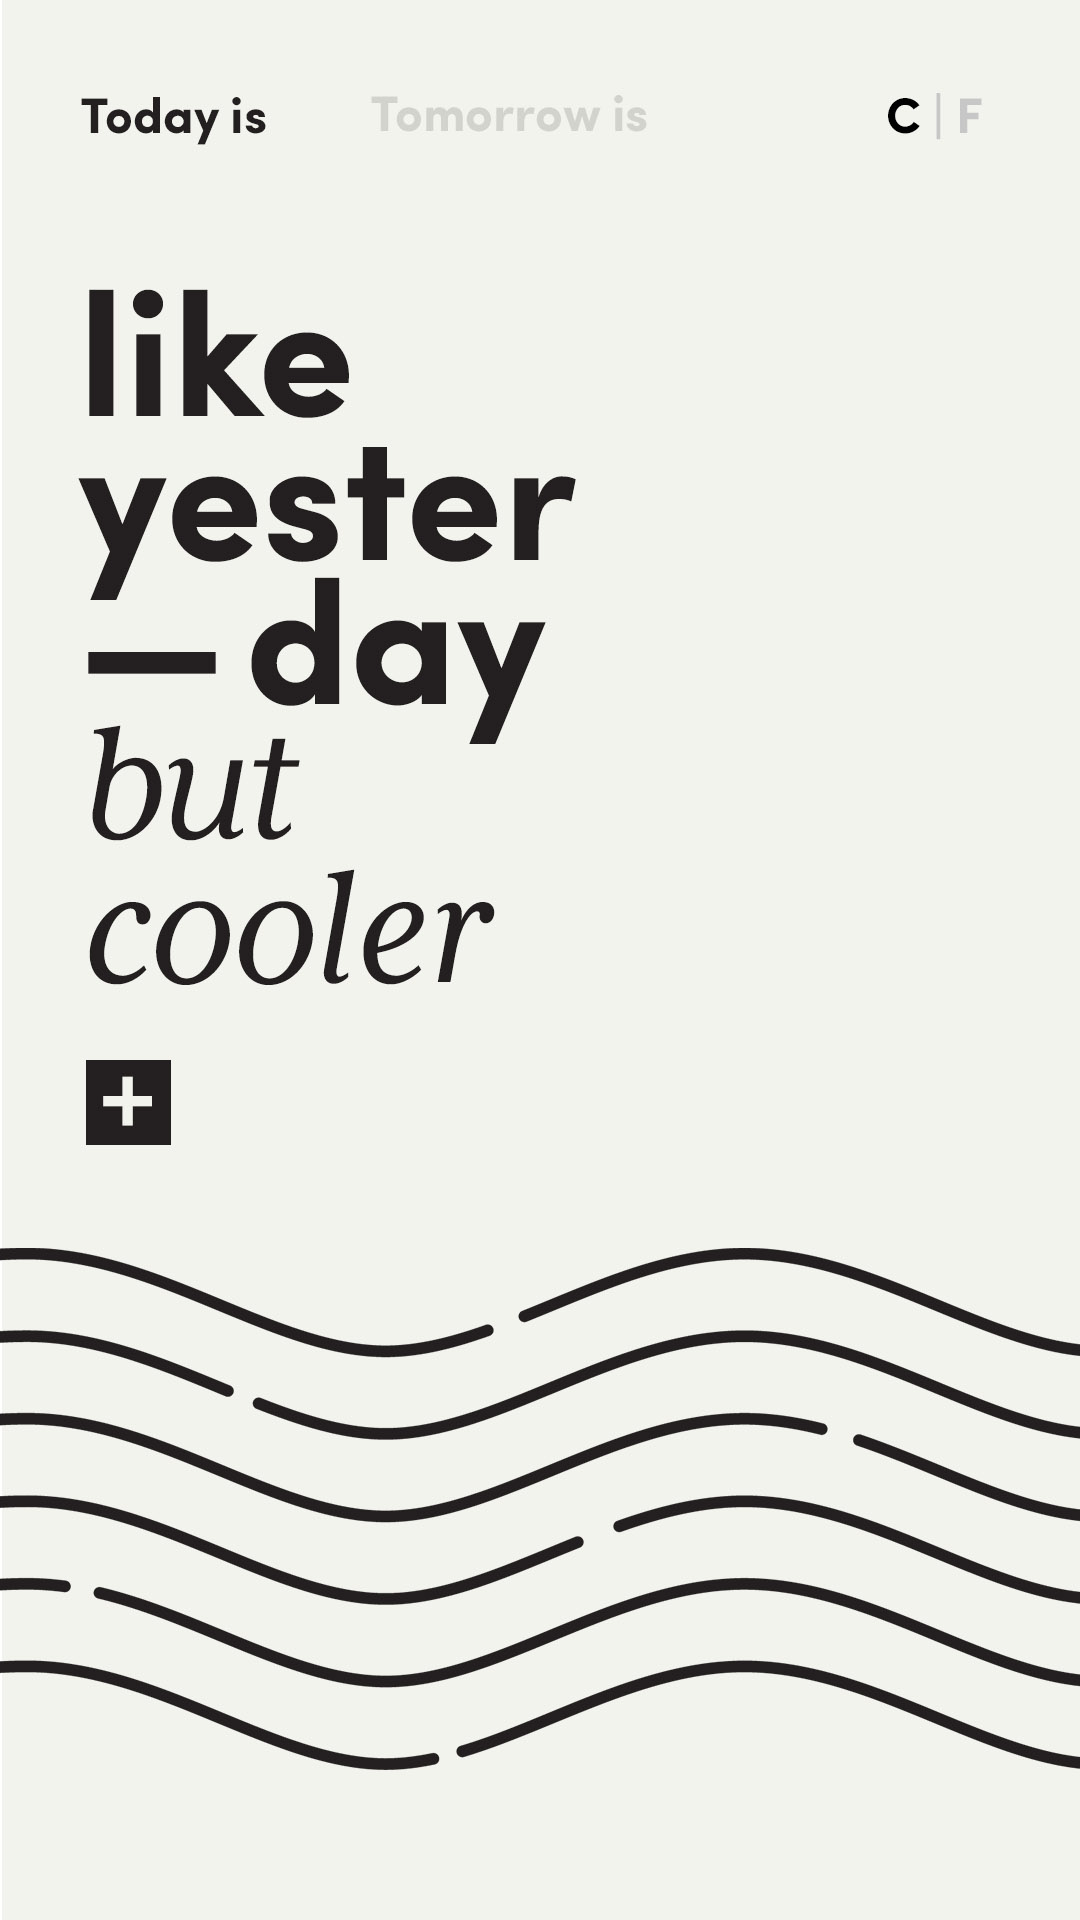 LikeYesterday_0004_but cooler